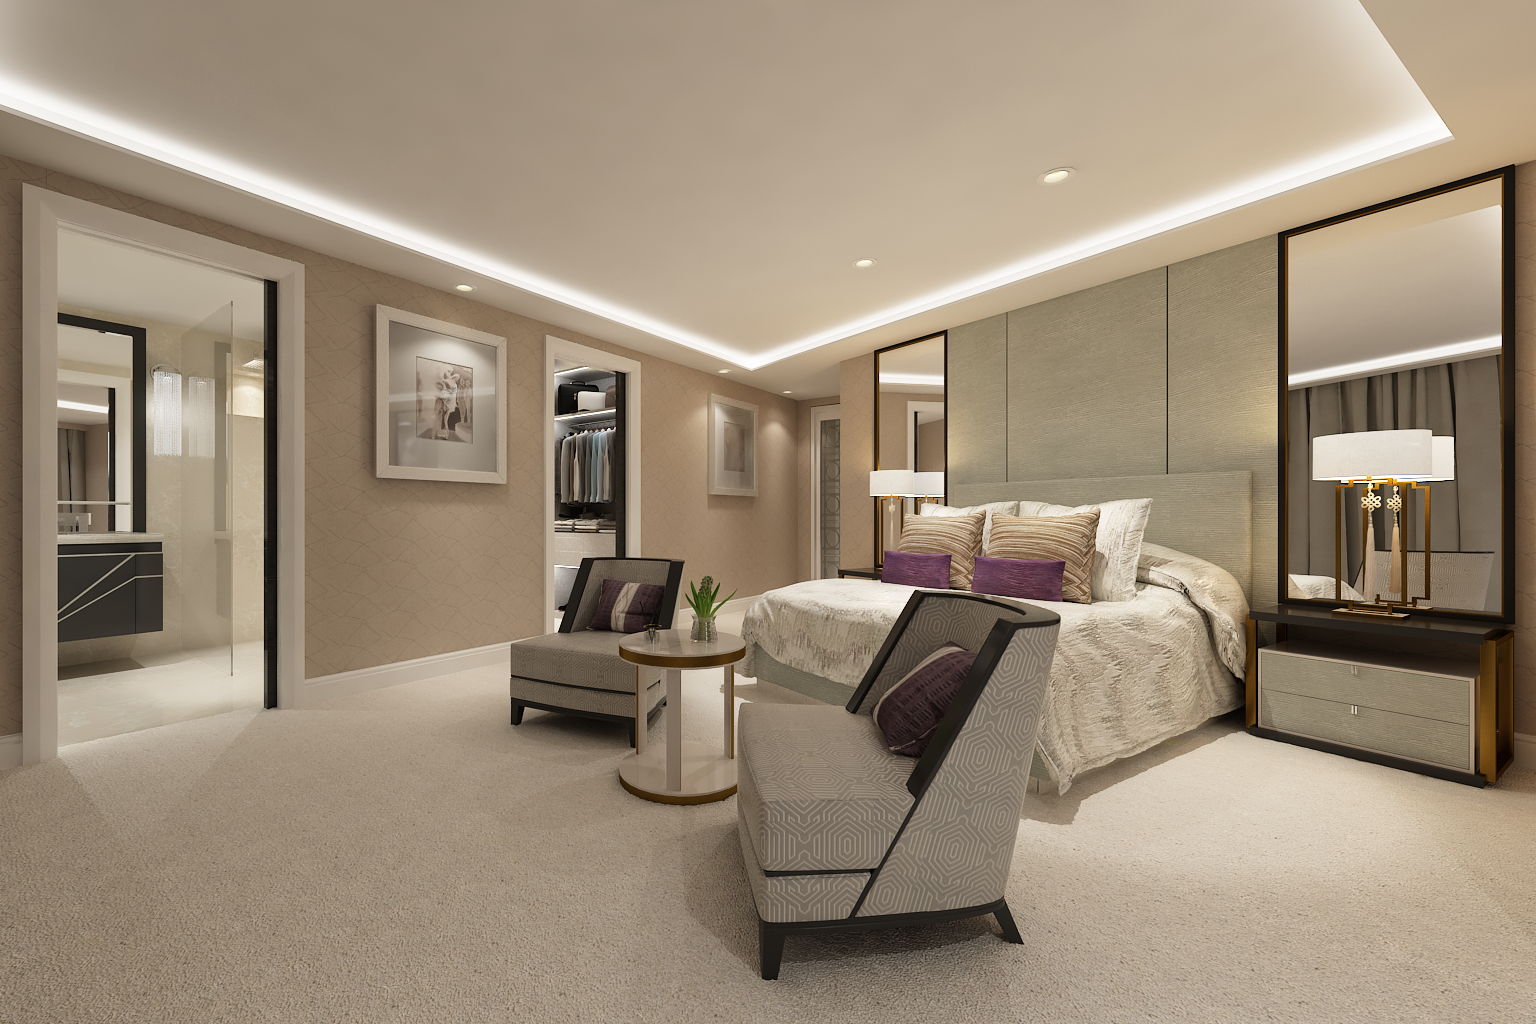 Bedroom CGI image showing a potential colour scheme and layout